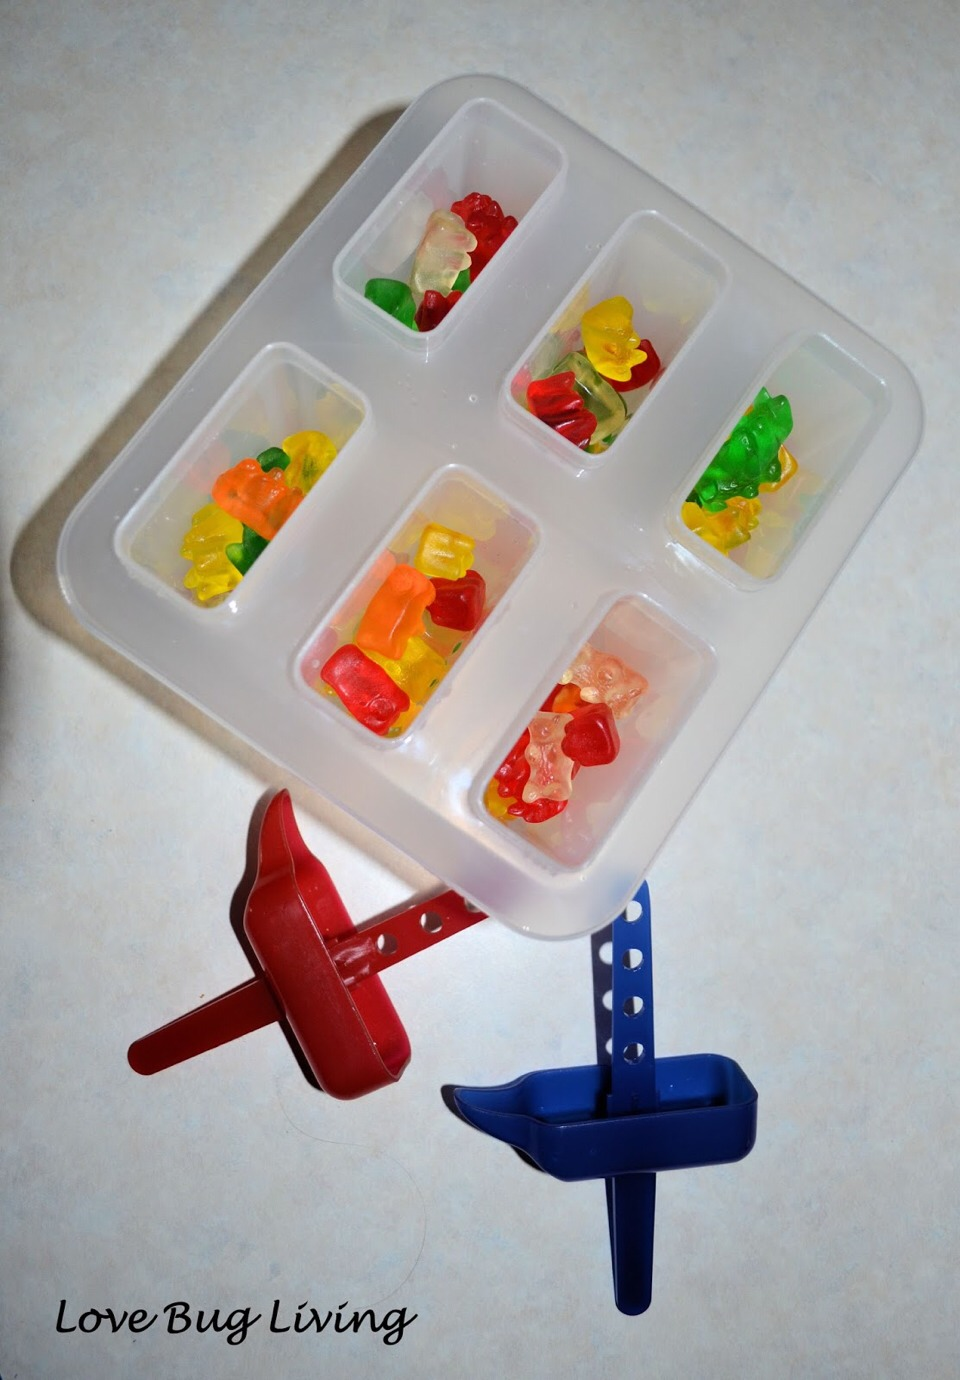 Next put the gummy bears and sprite in the popcicle thing